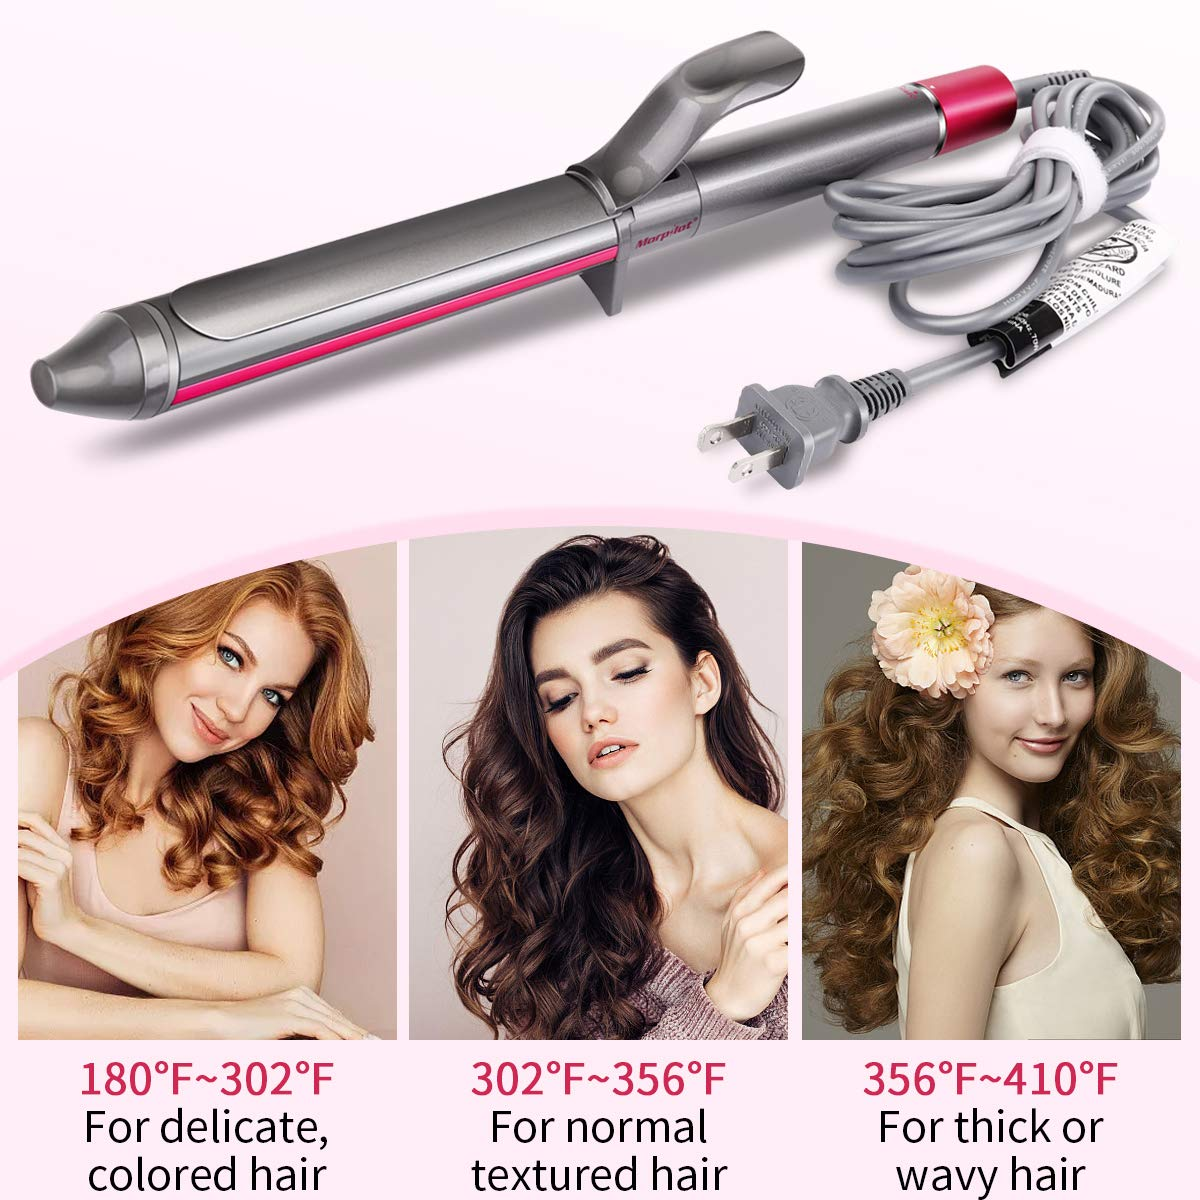 Curling Iron, Morpilot Hair Curler 32mm Automatic Hair Curling Wand with Anti-scalding Insulated Tip, Ceramic Technology with LCD Temp Display Dual Voltage Include Heat Resistant Glove